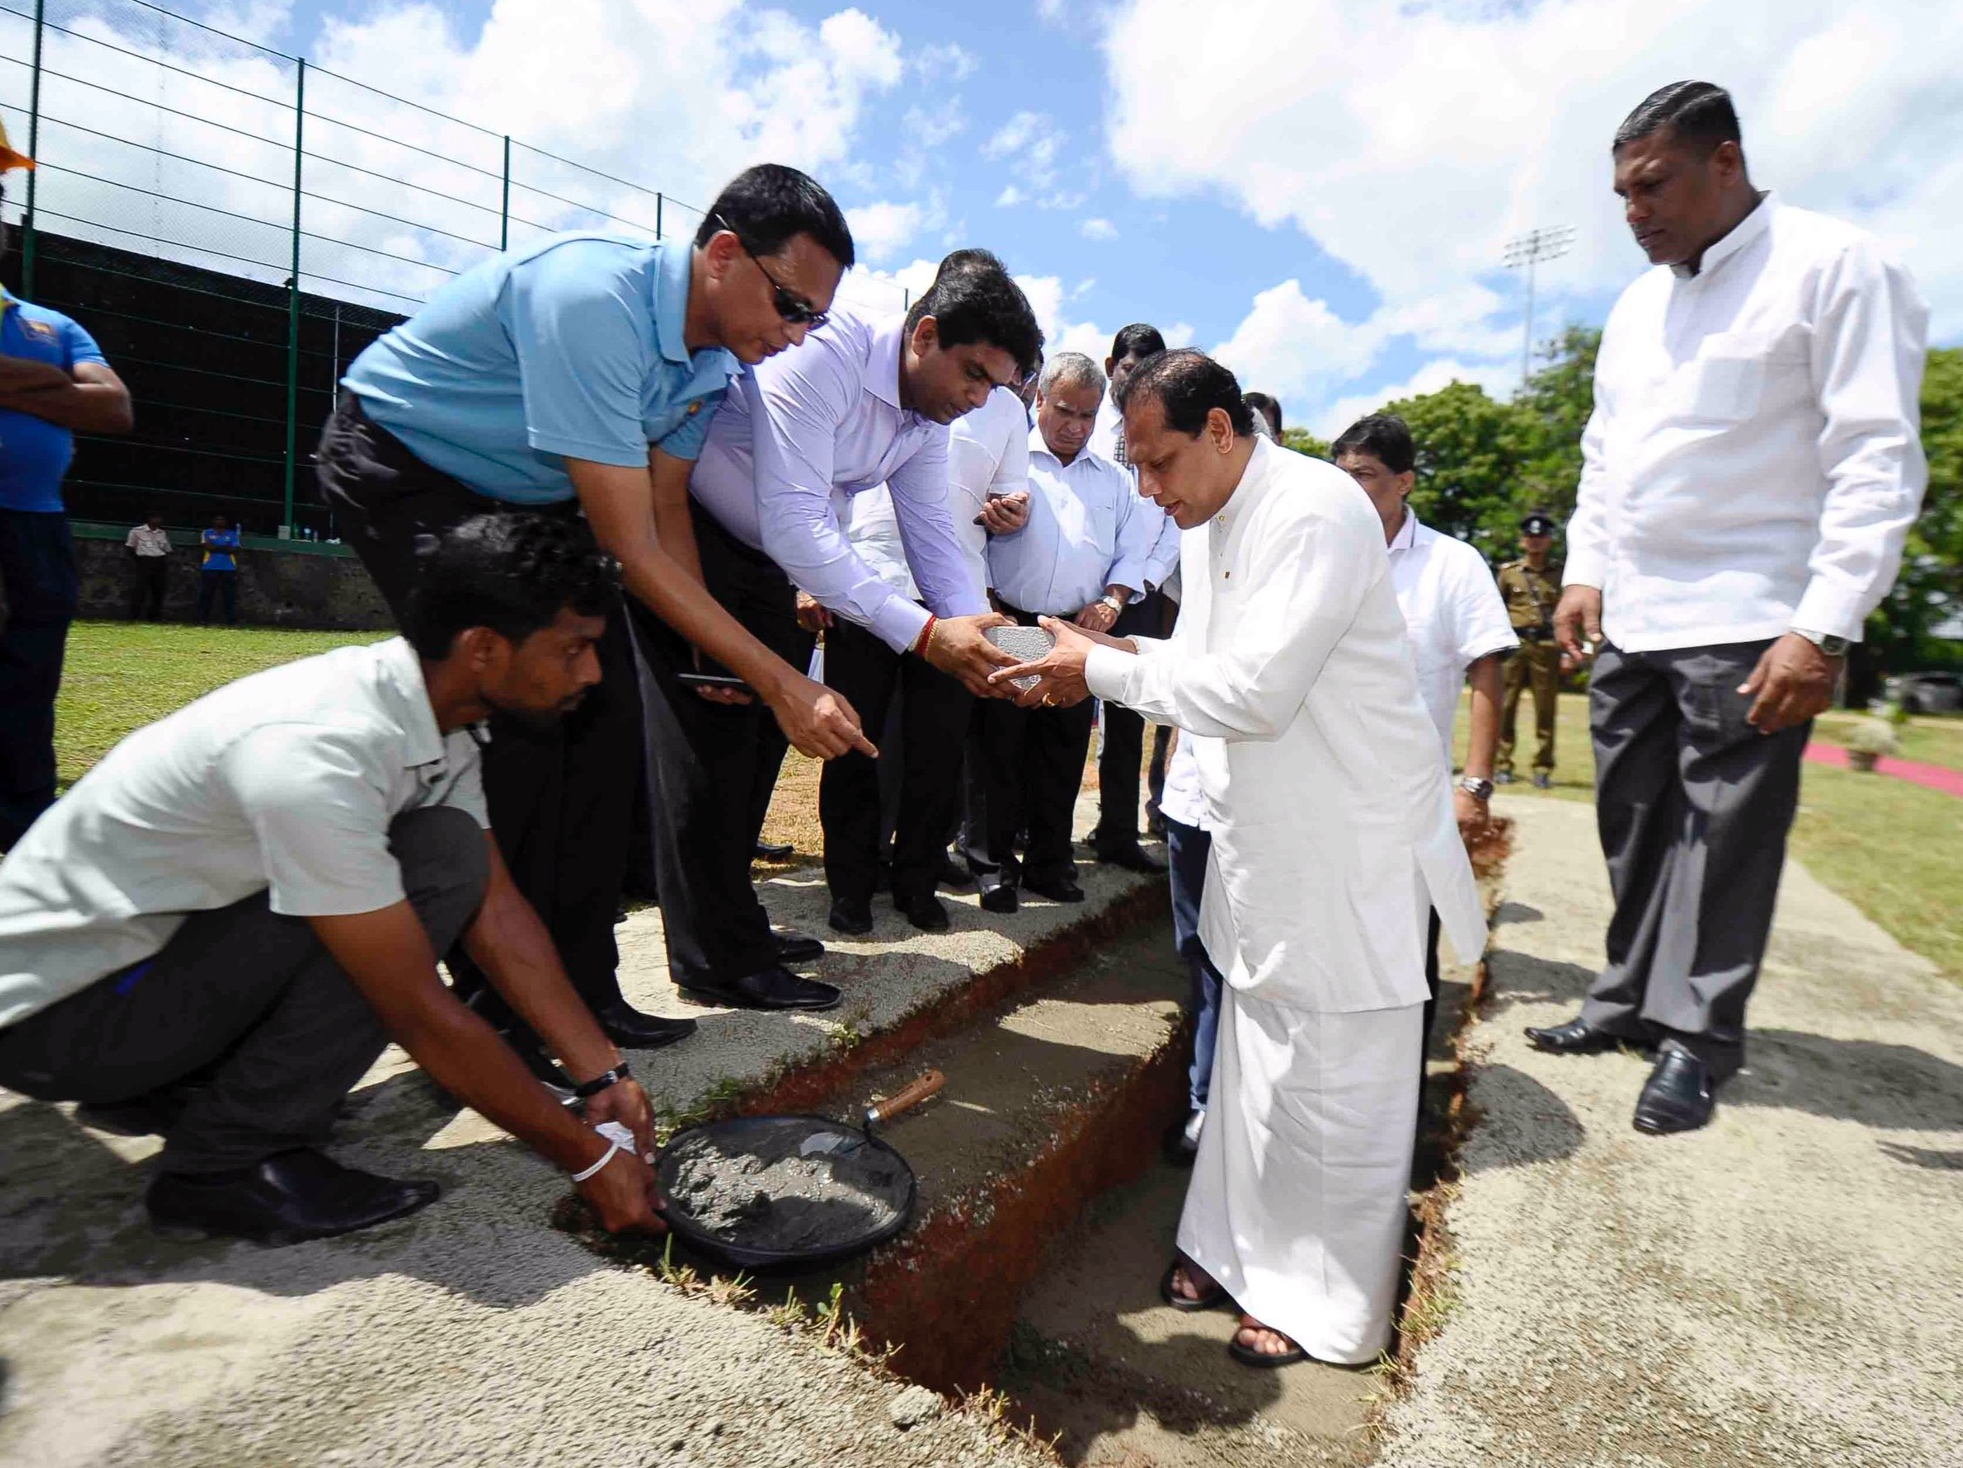 The laying of a foundation stone would take place in a carefully timed ceremony in India. Here begins a cricket facility in Dambulla